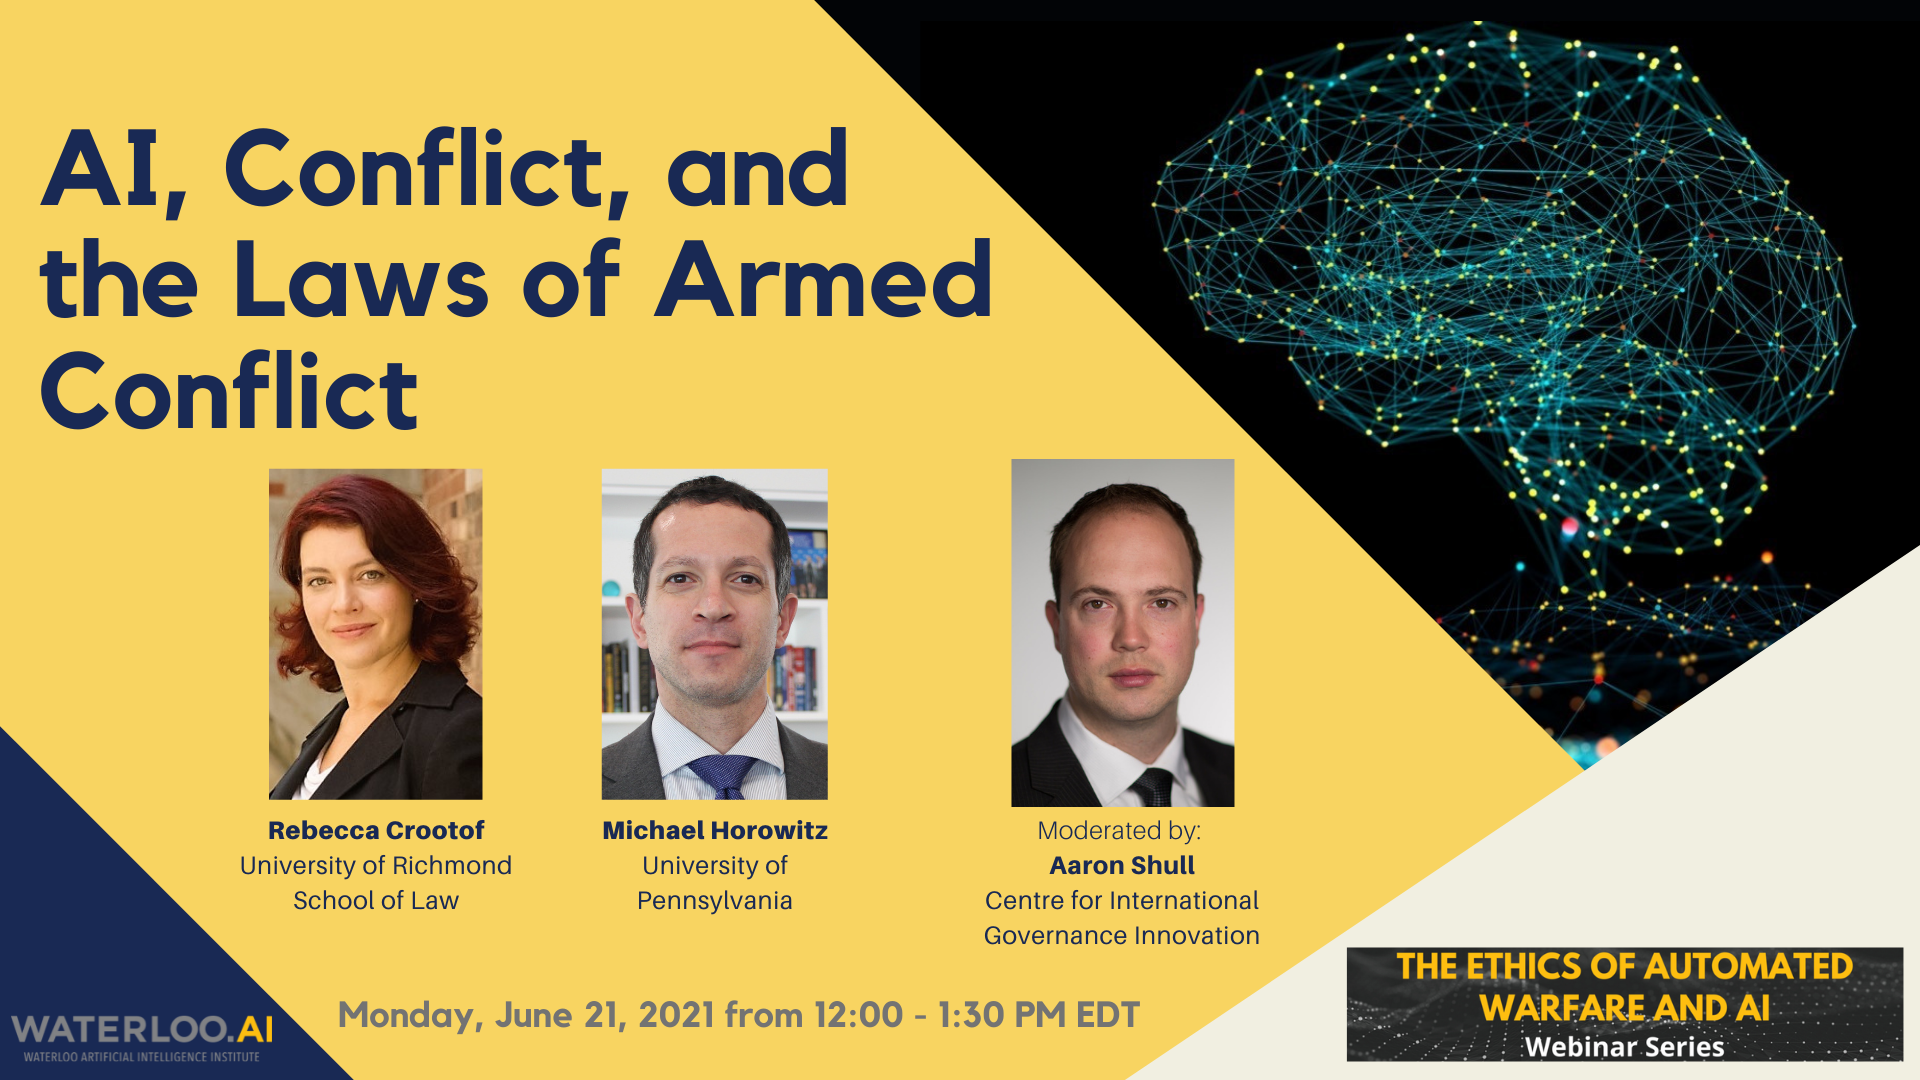 AI, Conflict, and the Laws of Armed Conflict event poster